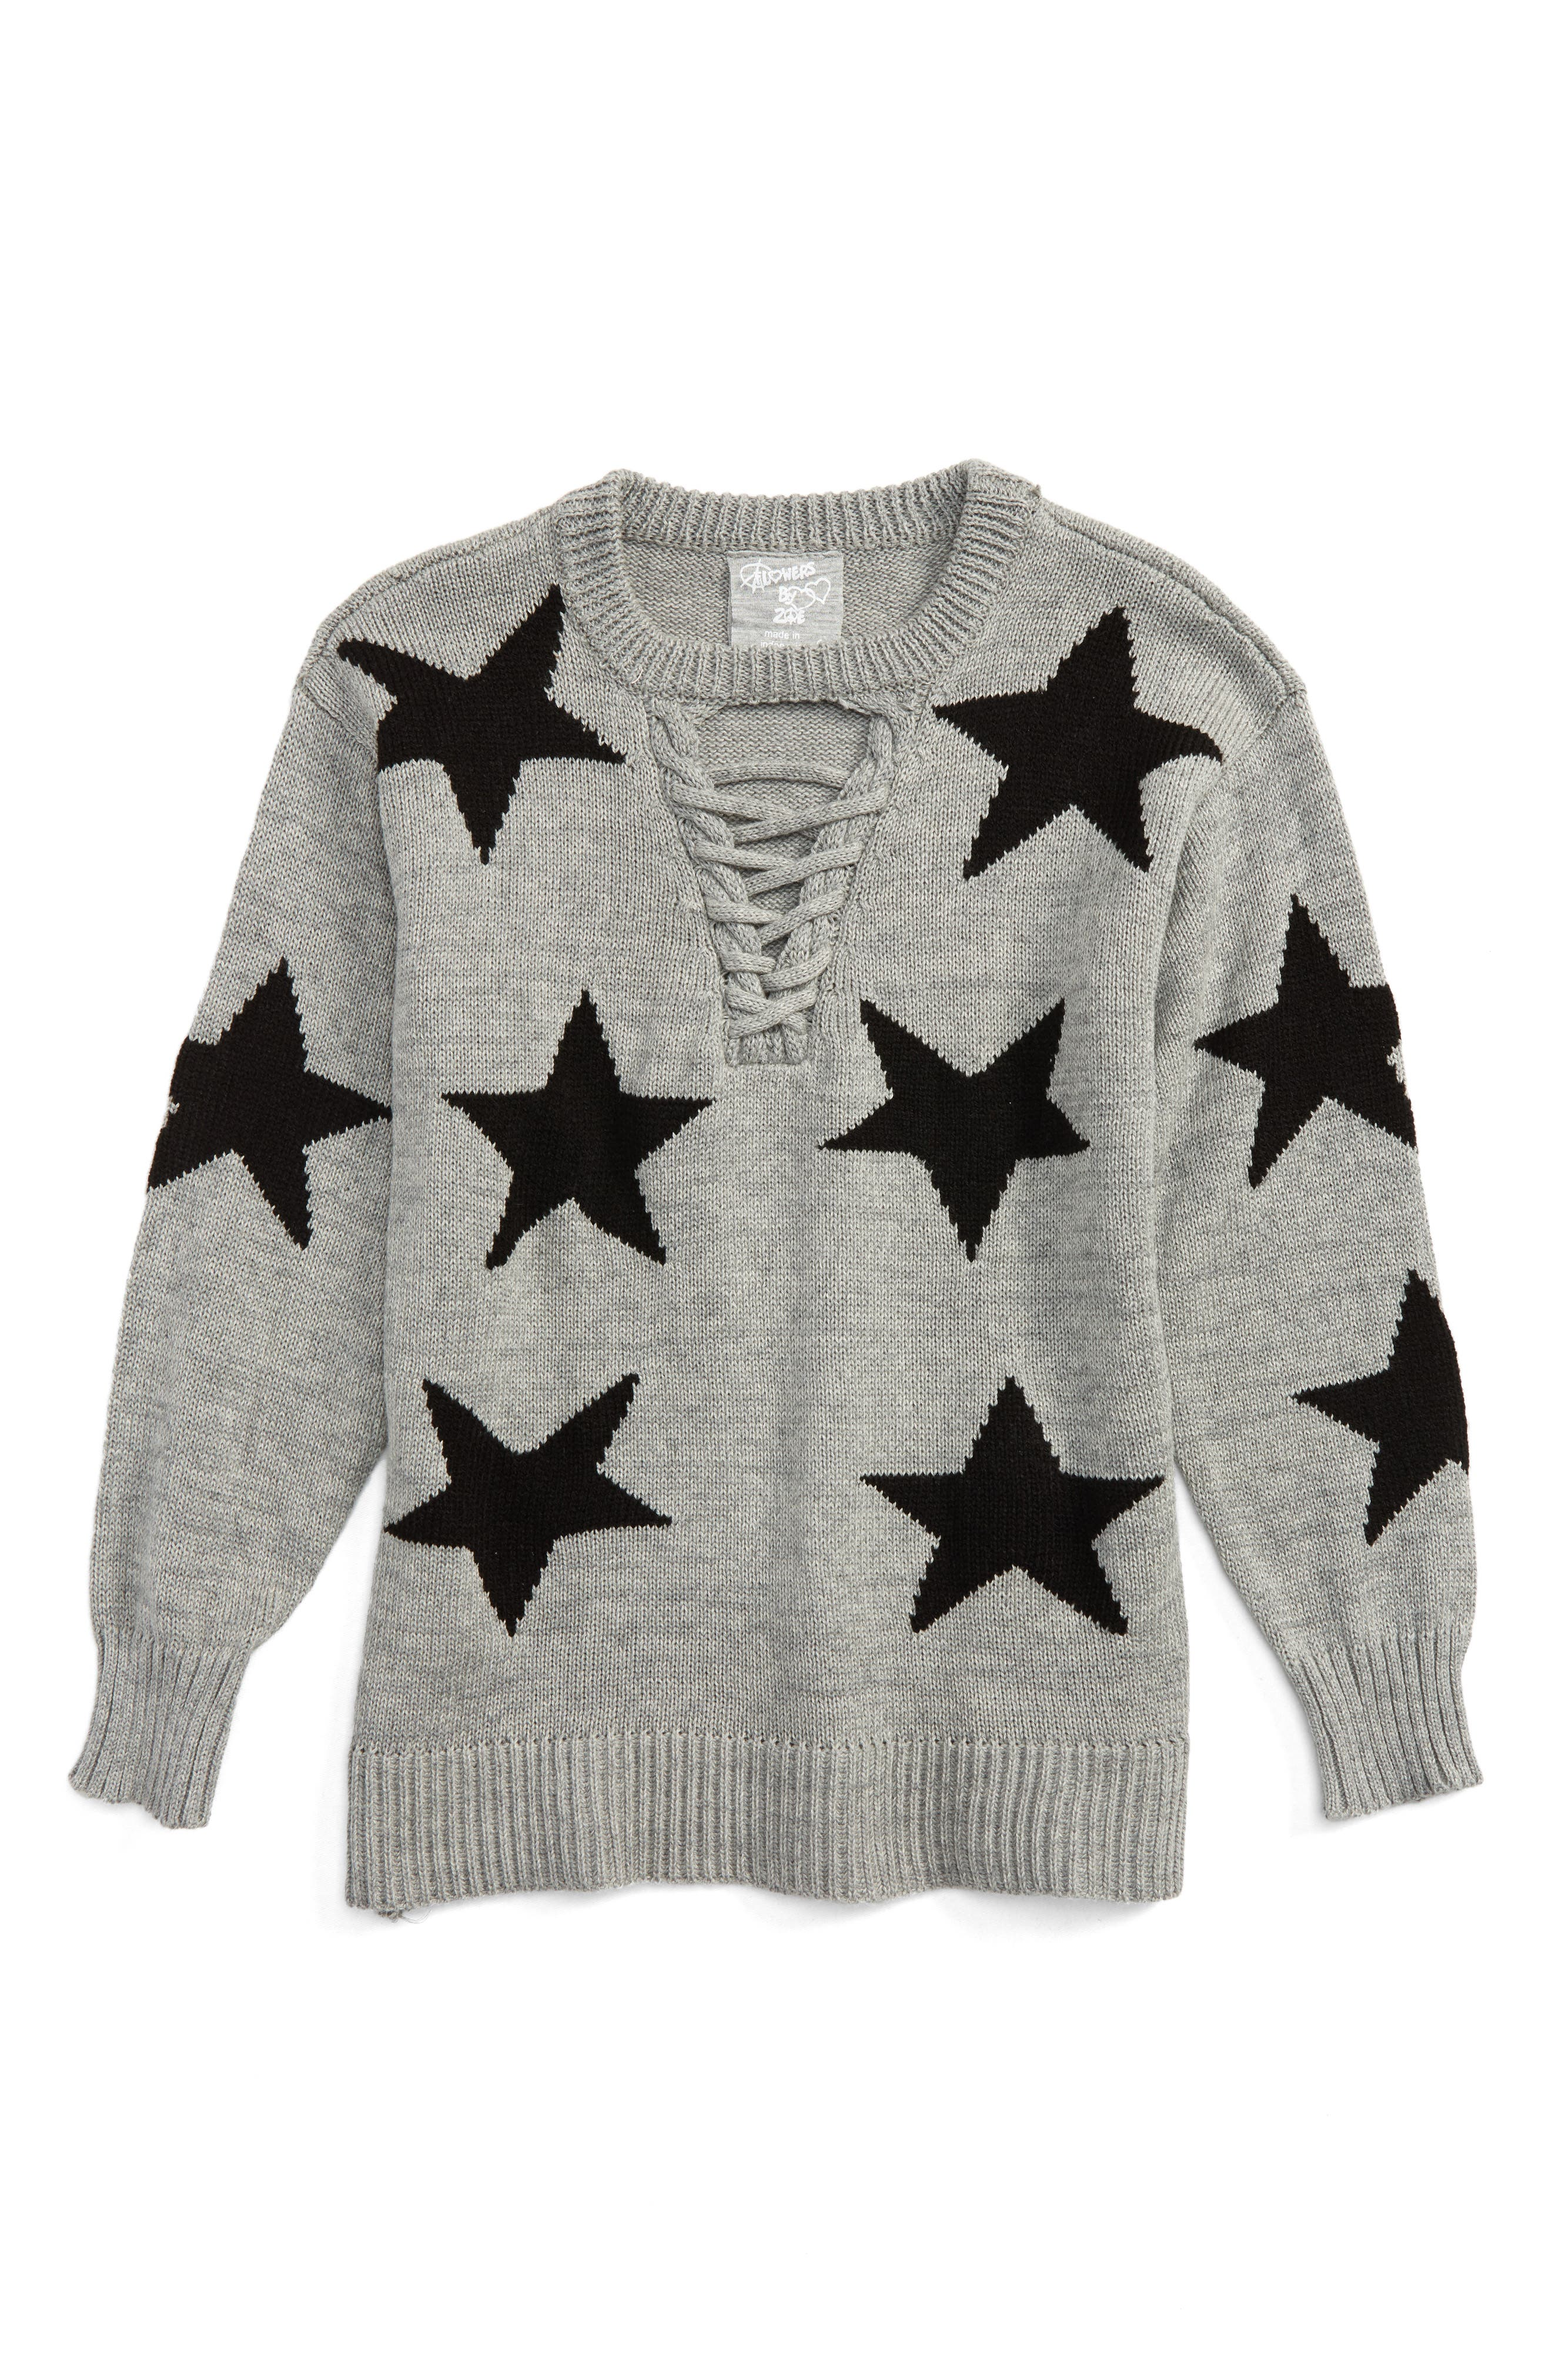 Star Lace-Up Sweater,                             Main thumbnail 1, color,                             Grey/ Black